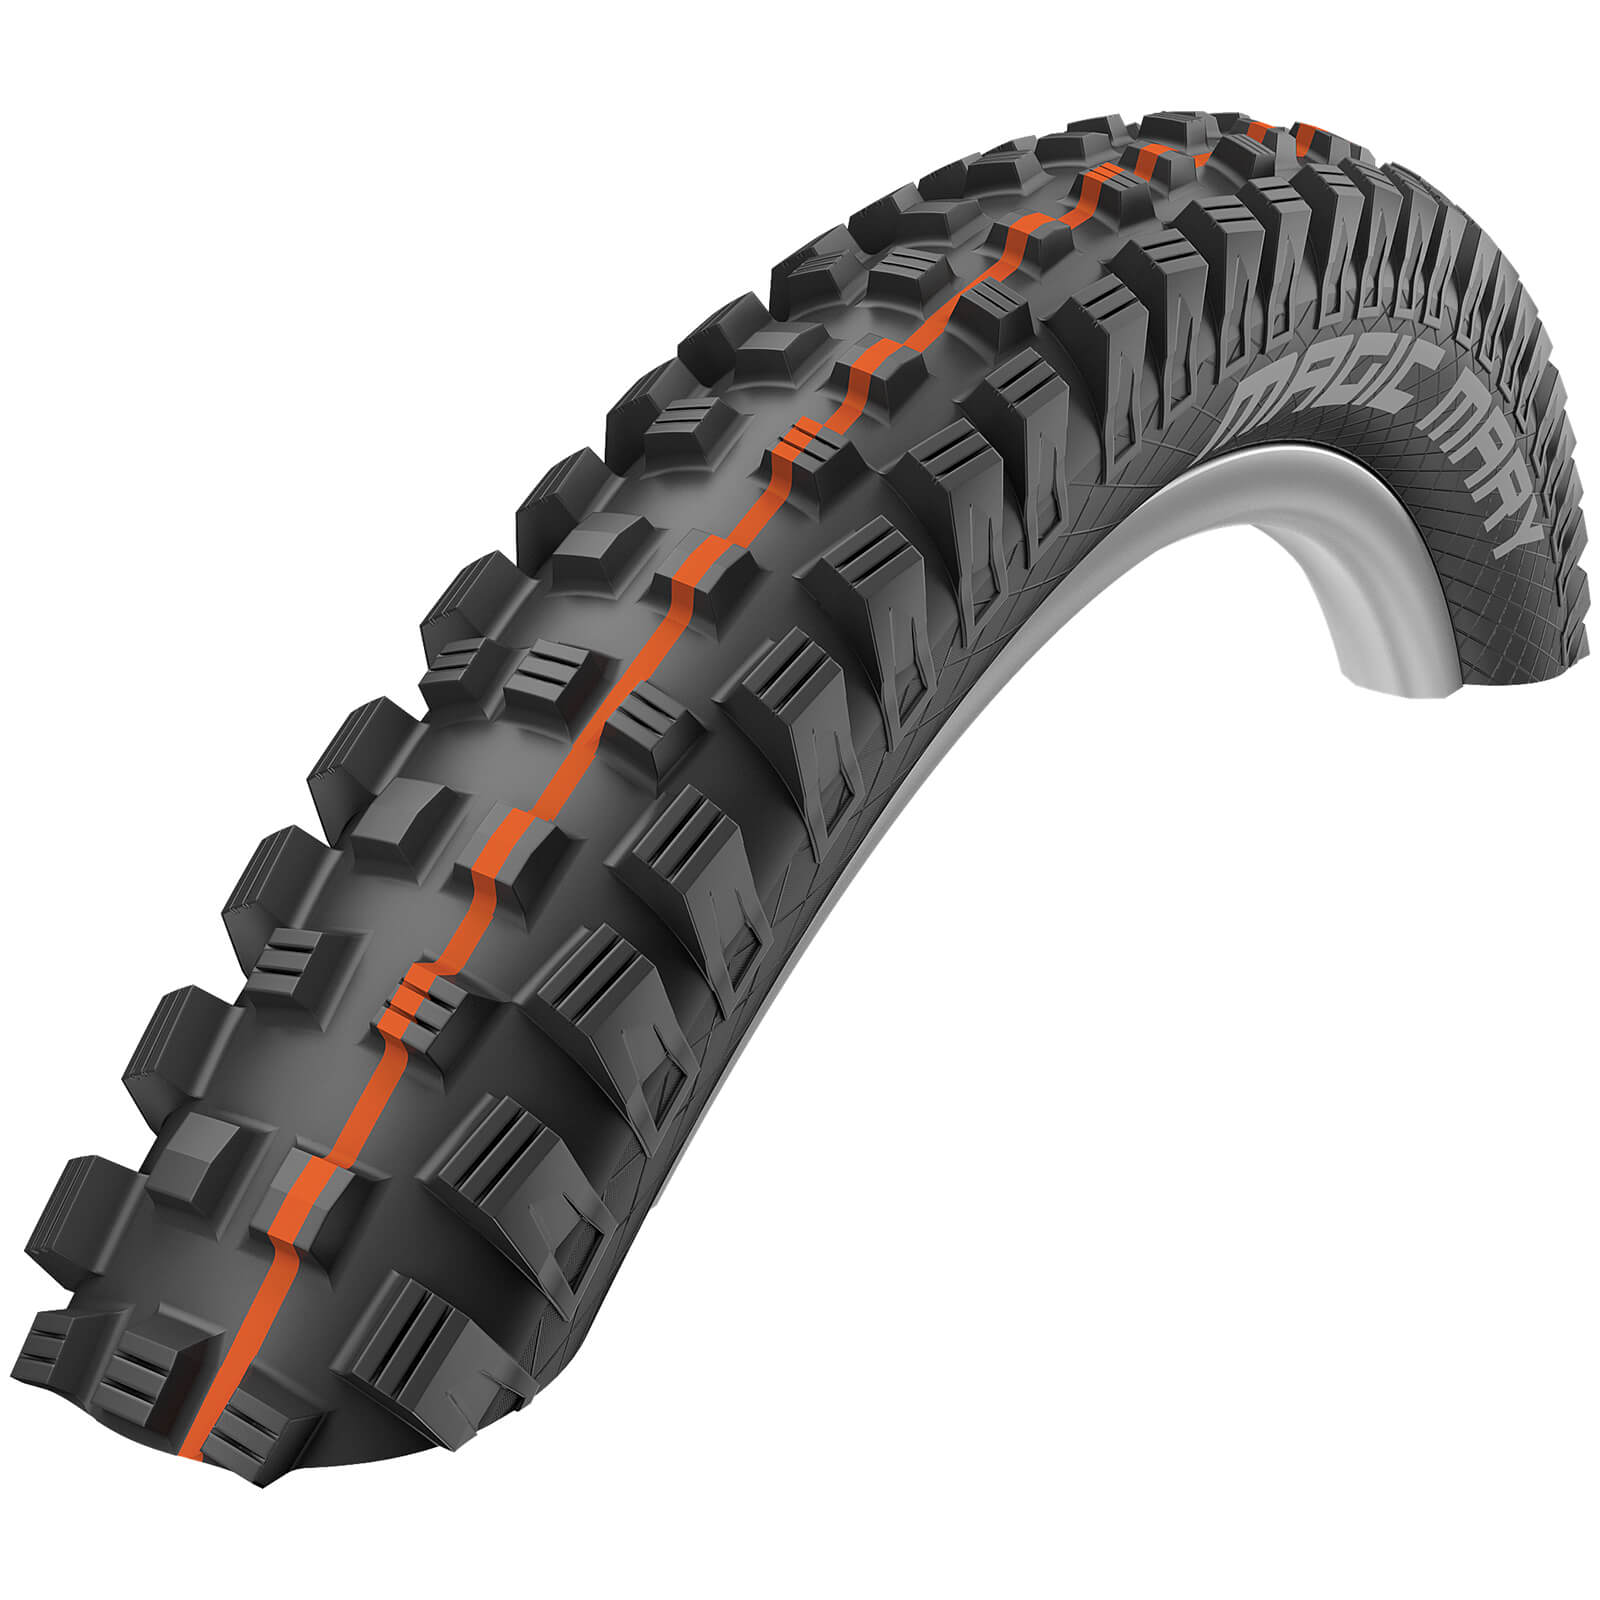 Schwalbe Magic Mary Evo Super Gravity Tubeless MTB Tyre - Black - 27.5in x 2.40in - Classic Skin